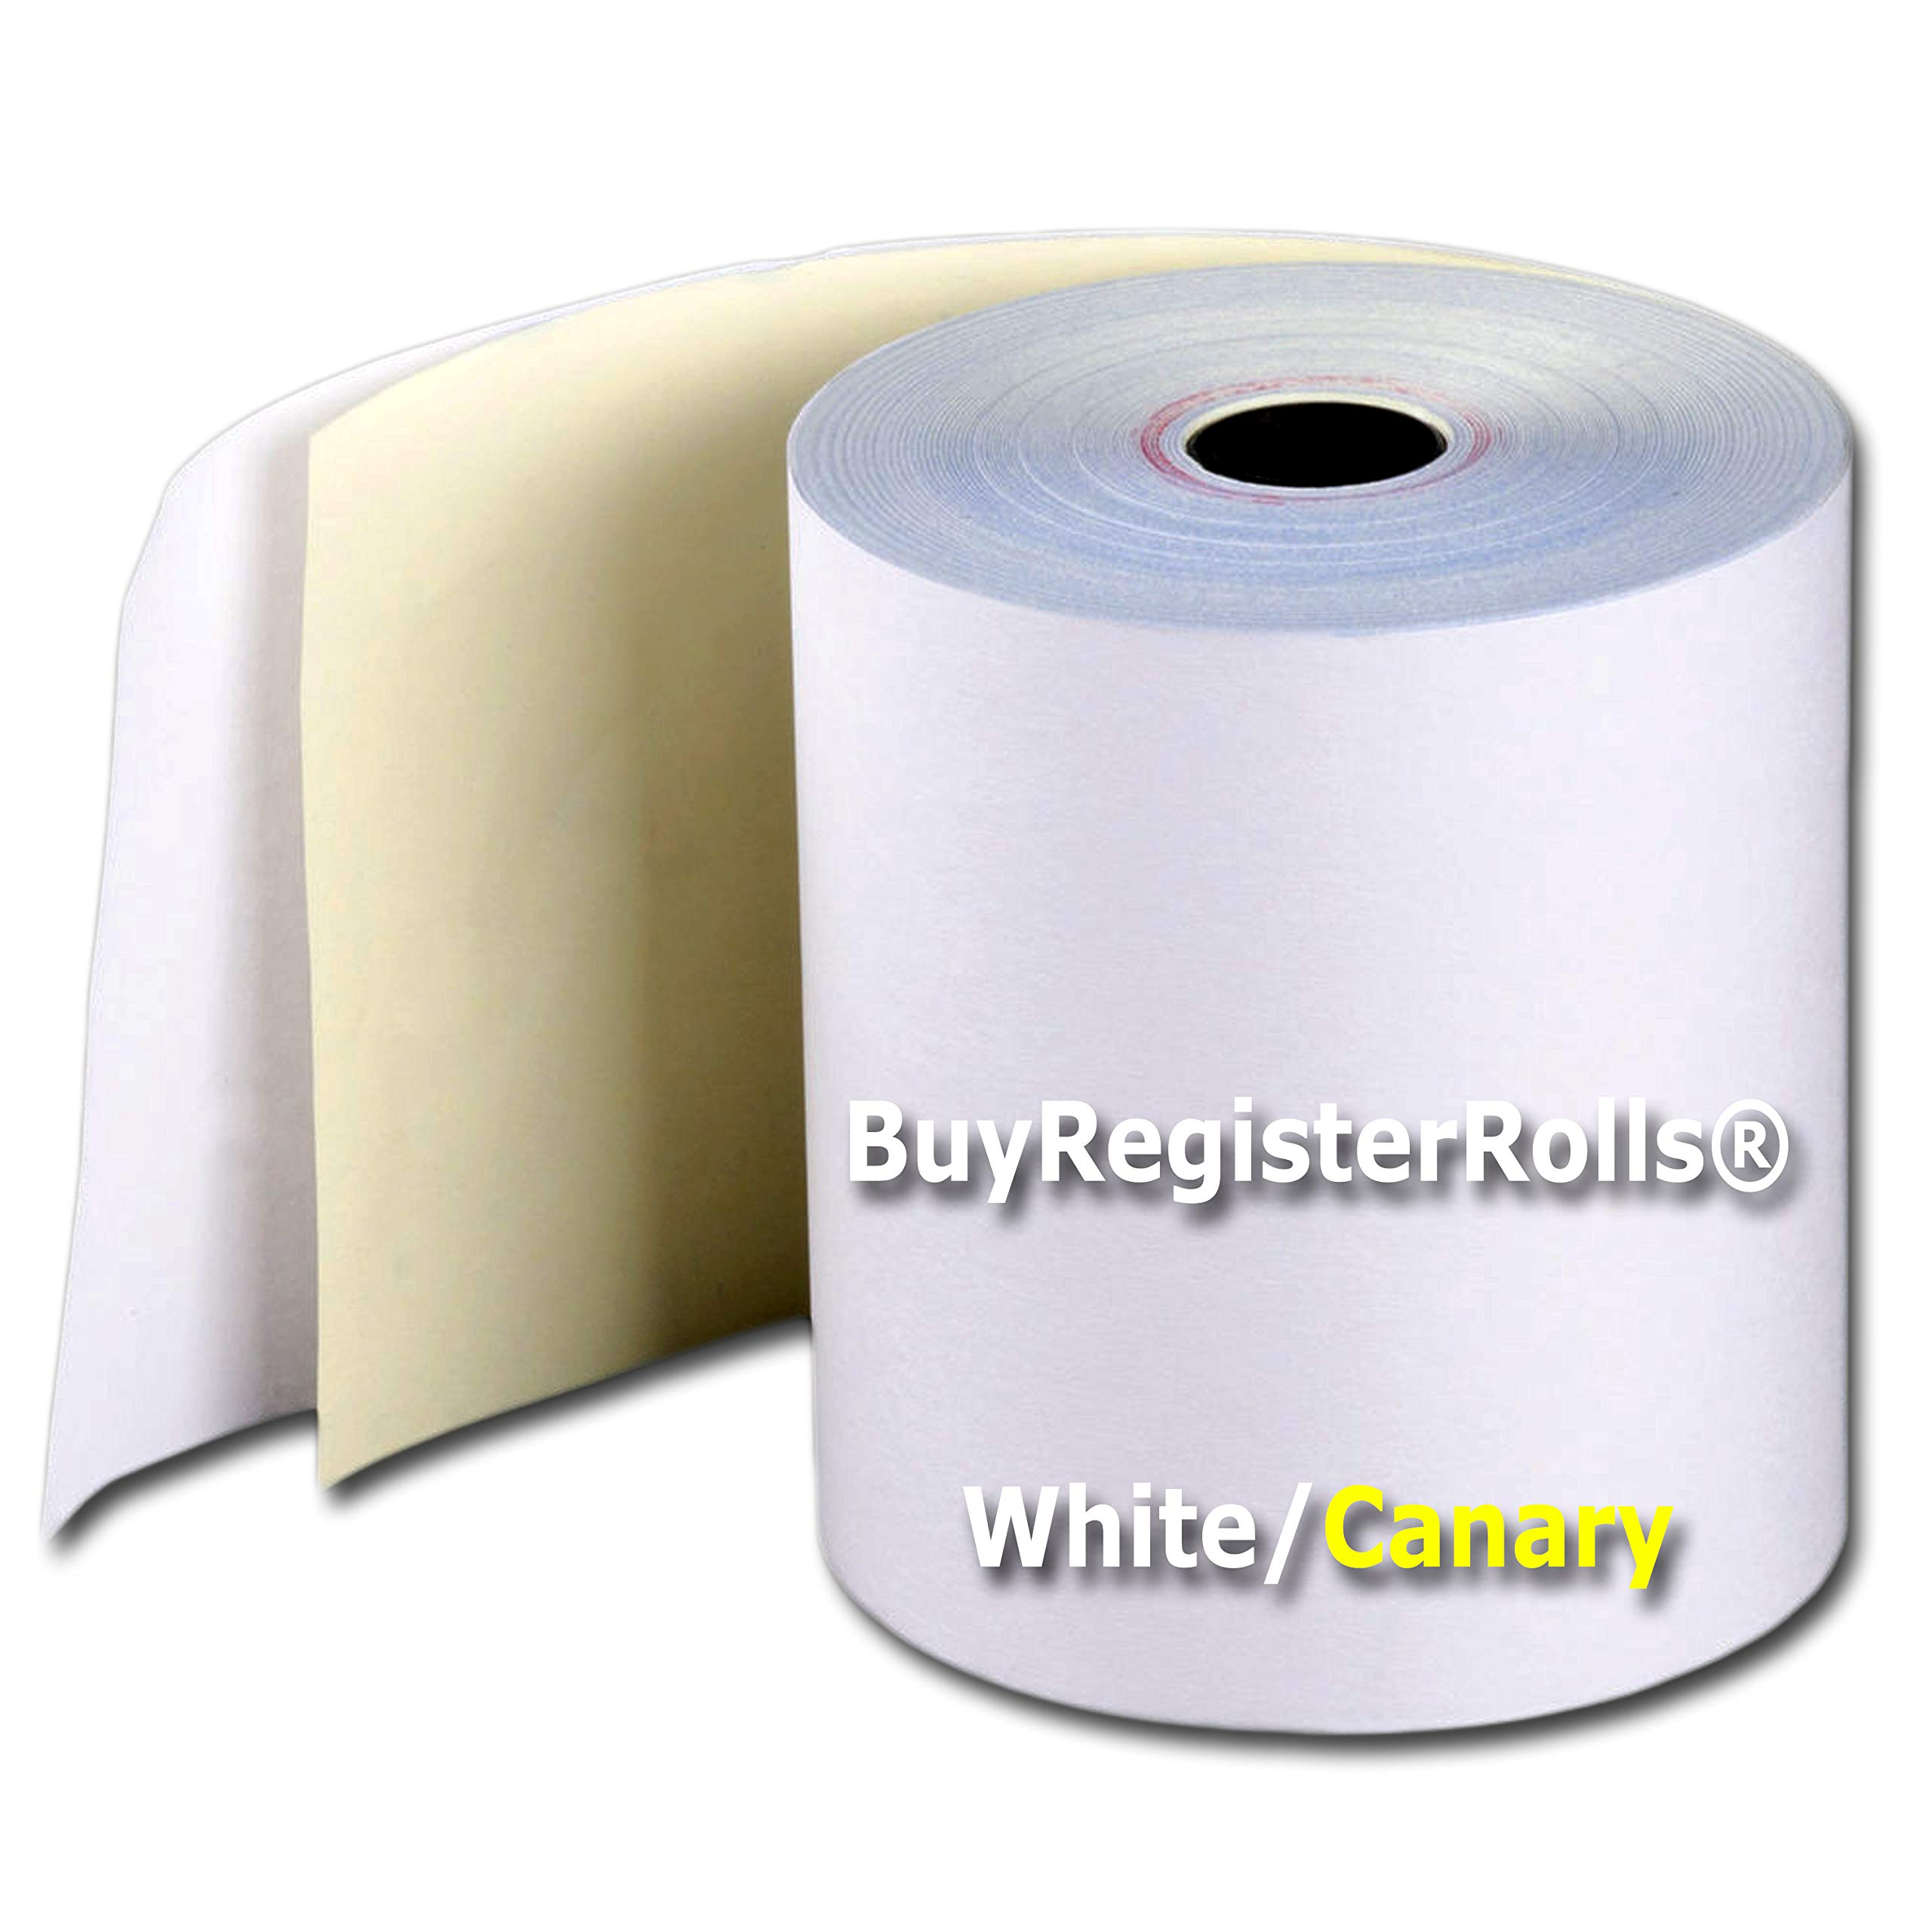 Kitchen printer paper Two Ply Carbonless Rolls, 3 X 90 Feet, White/Canary (3 X 90 Feet, White/Canary (50 Rolls Per Carton) Required sp700 printer ribbon or printer ribbon erc30/34/38 from BuyRegisterR by BuyRegisterRolls